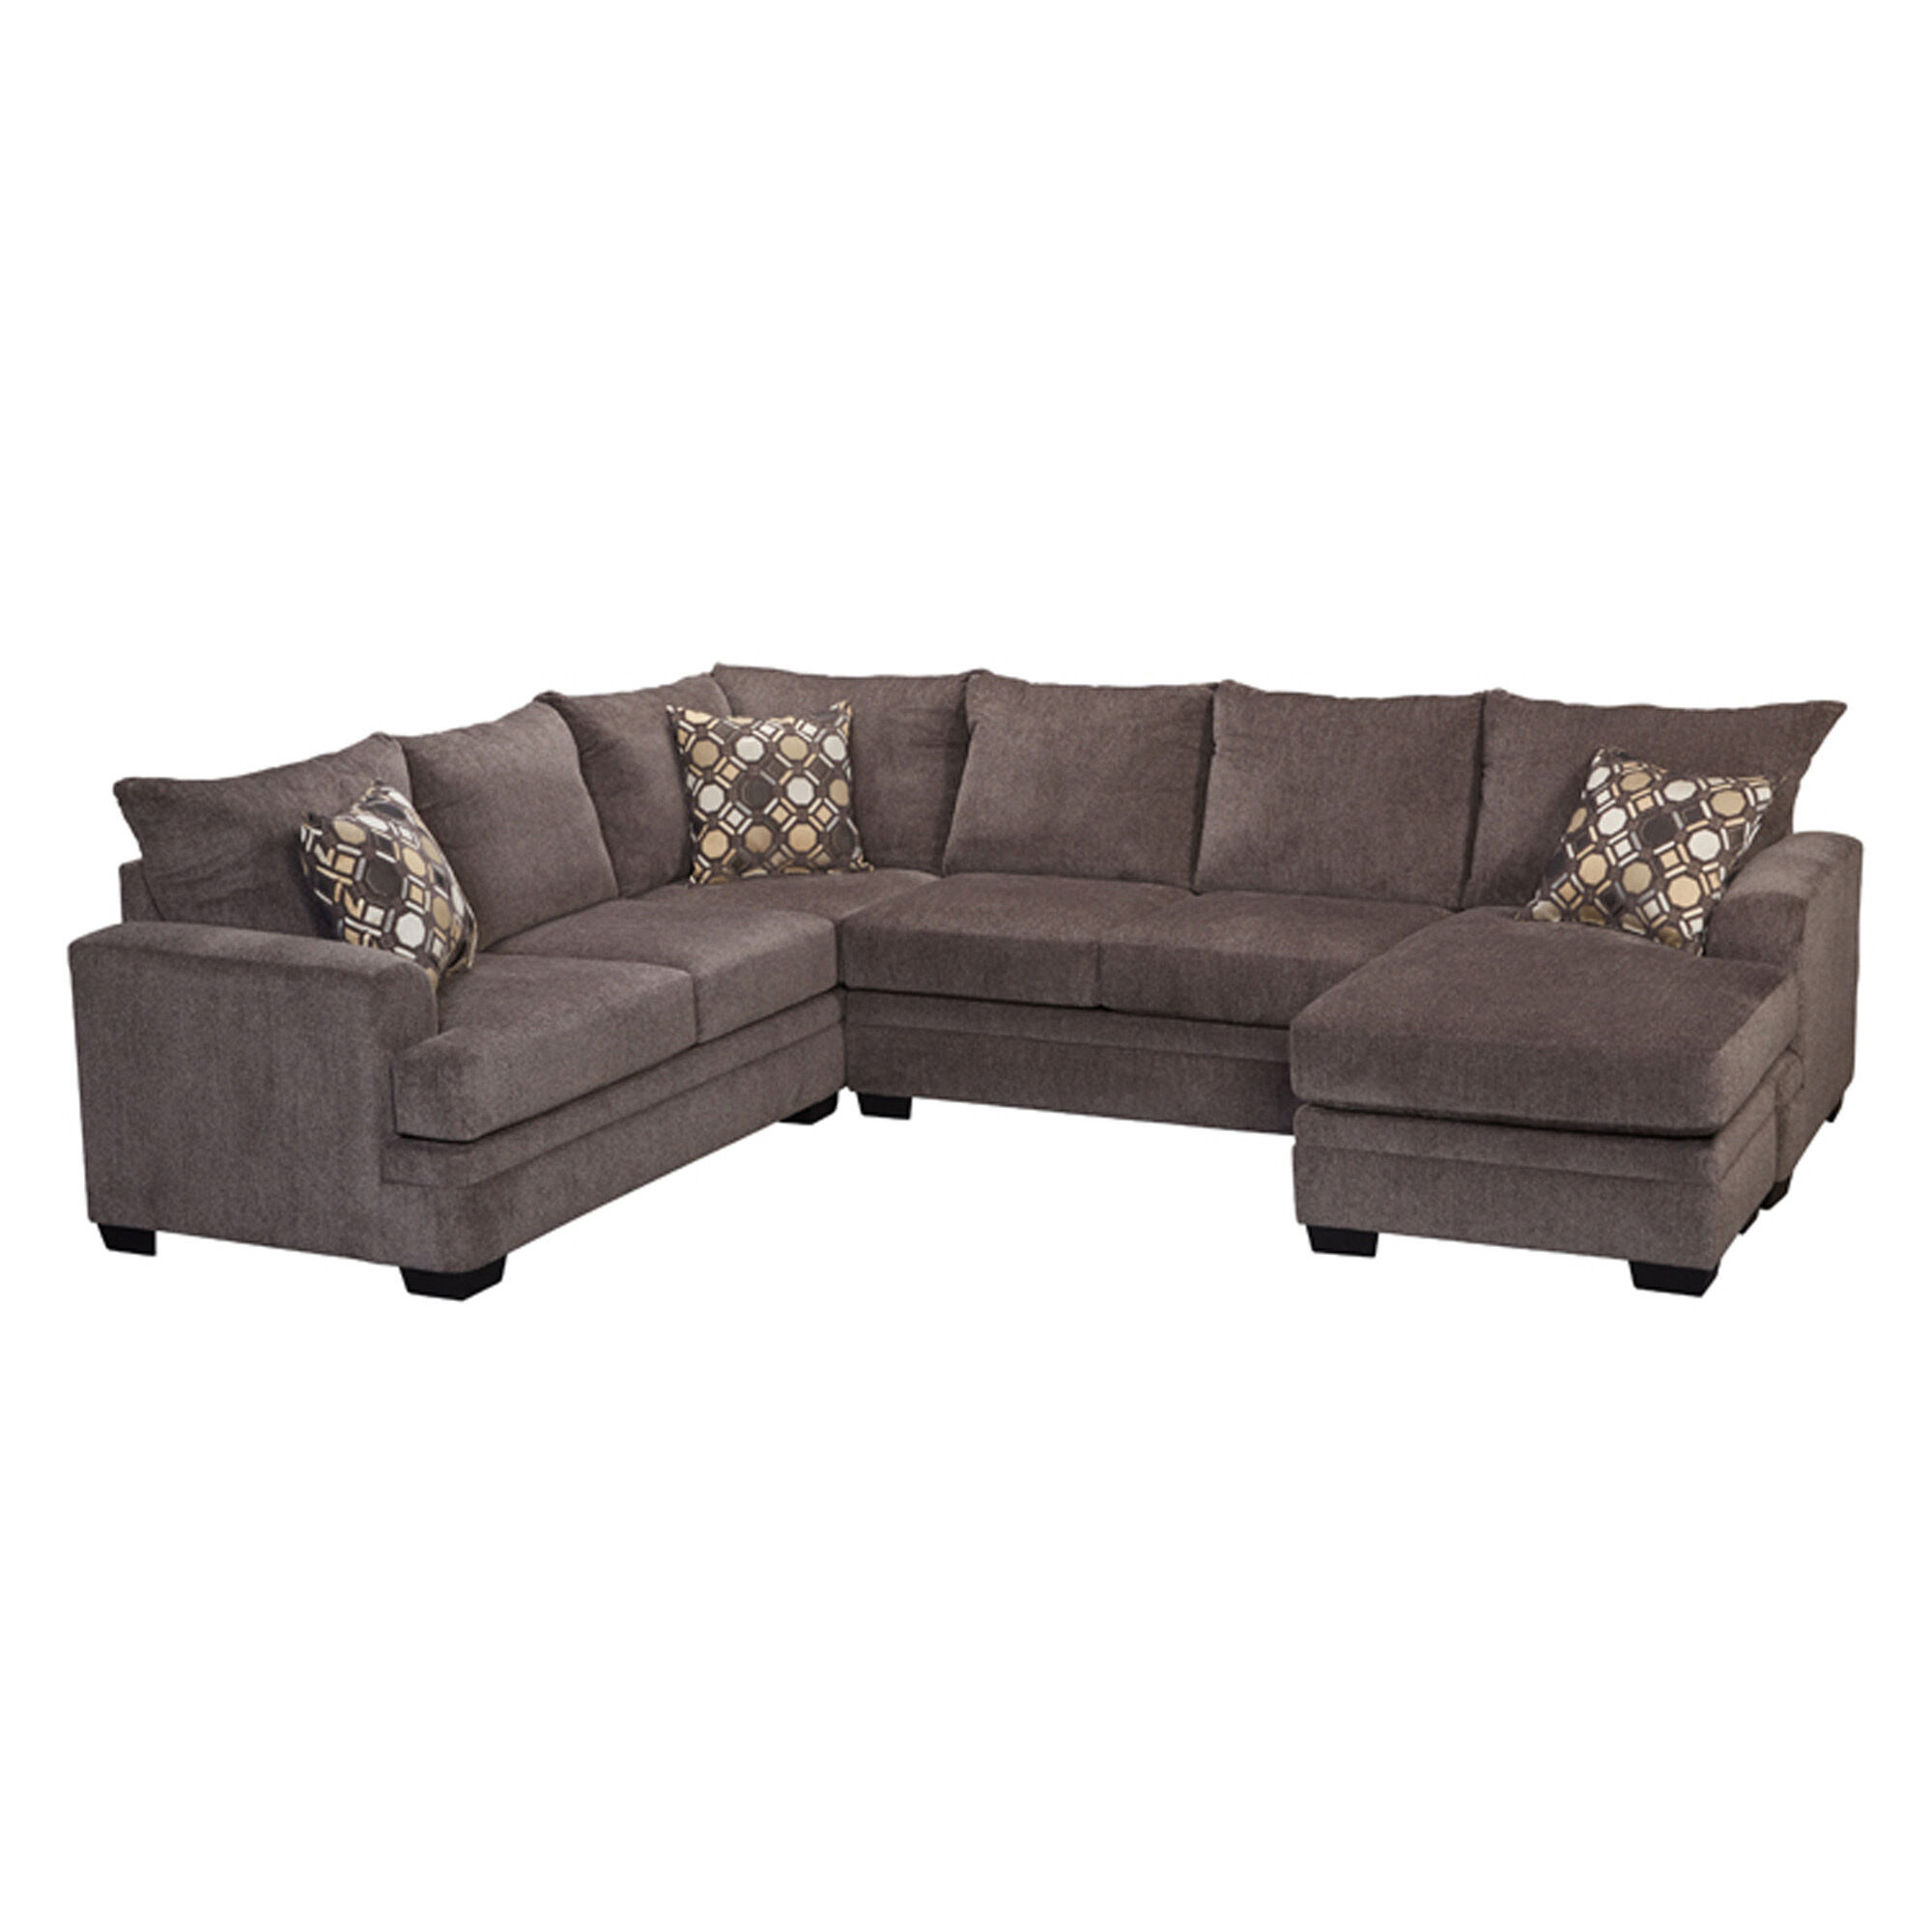 Made Sofa Reviews 2 Piece Kimberly Sectional Living Room Collection